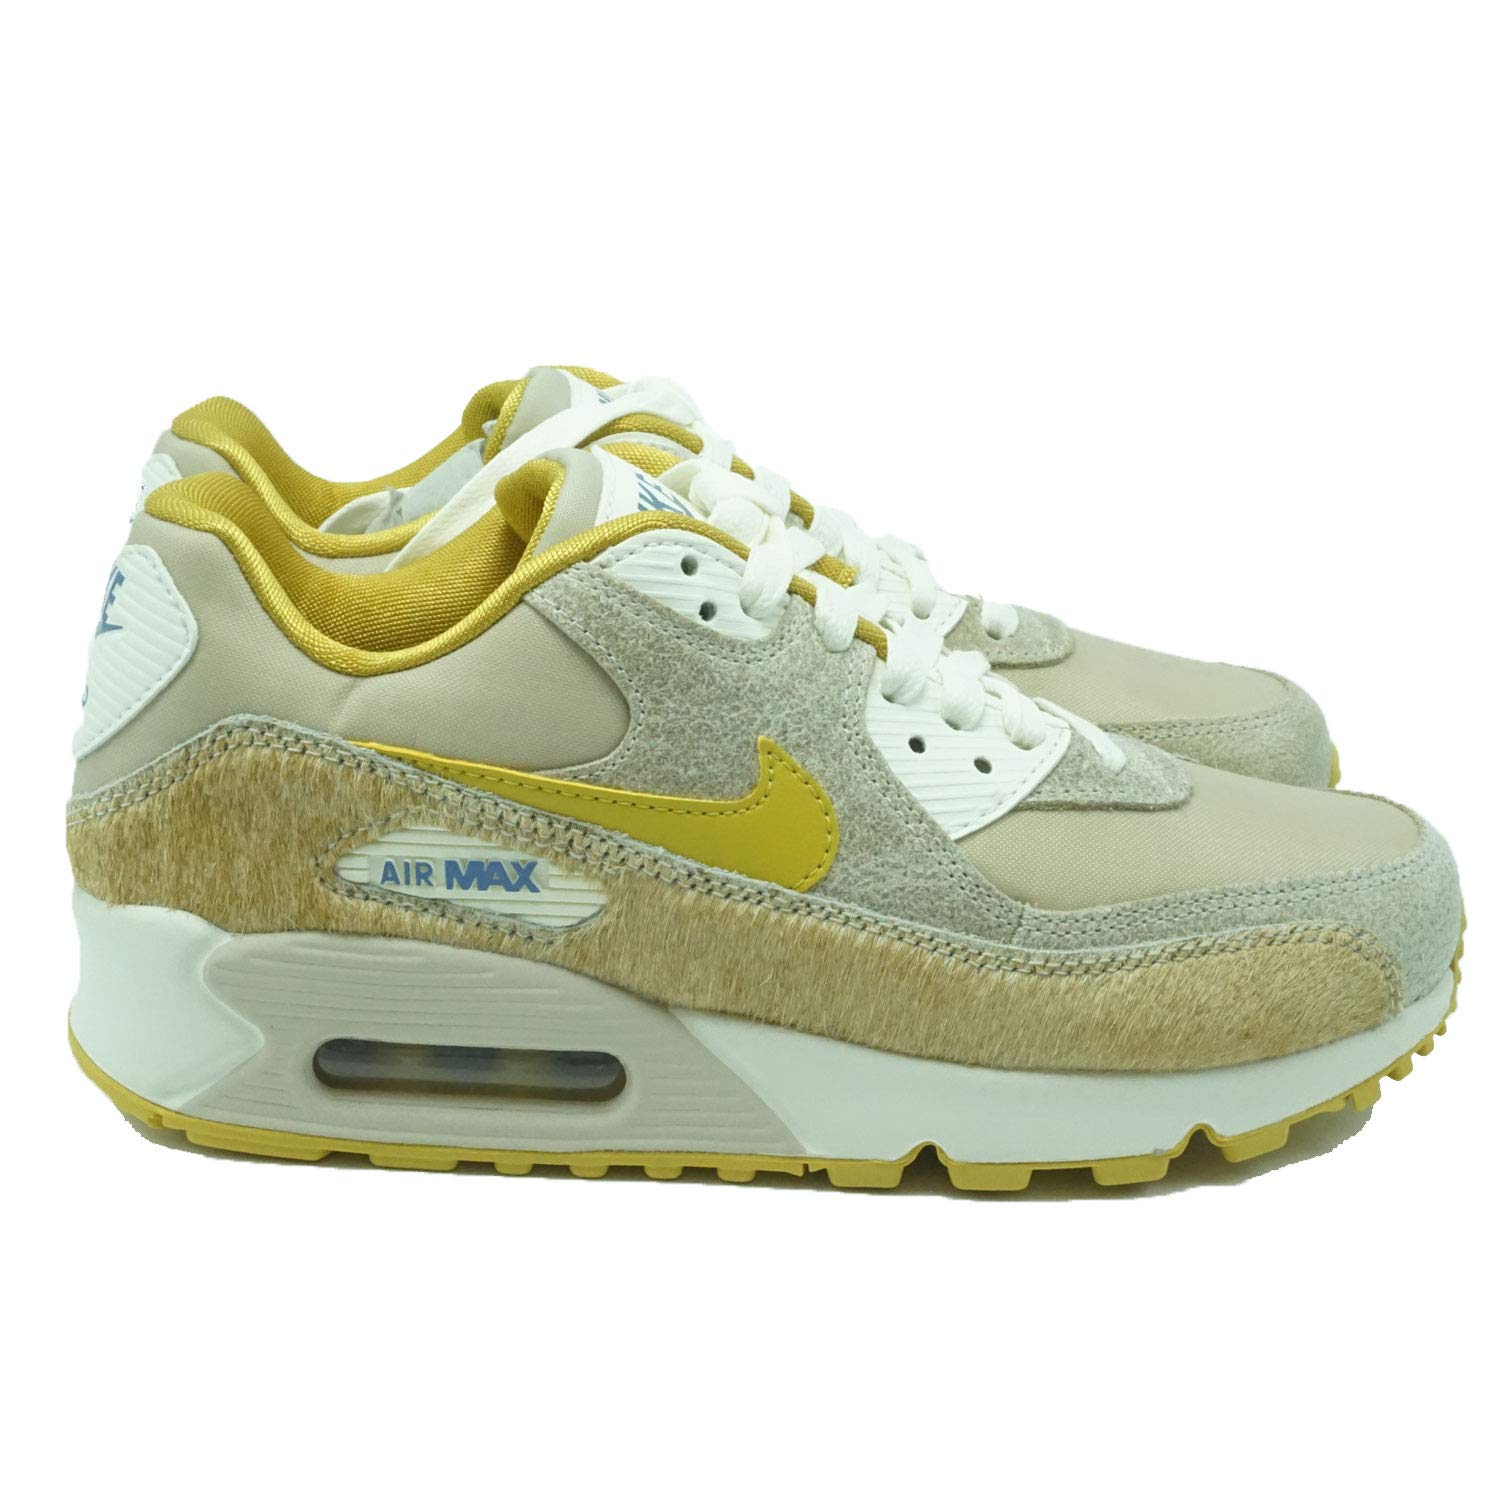 buy online 5eb53 305cf Galleon - Nike Women s Air Max 90 Wheat Gold-Sail Ficelle AT4968-200 (Size   8)